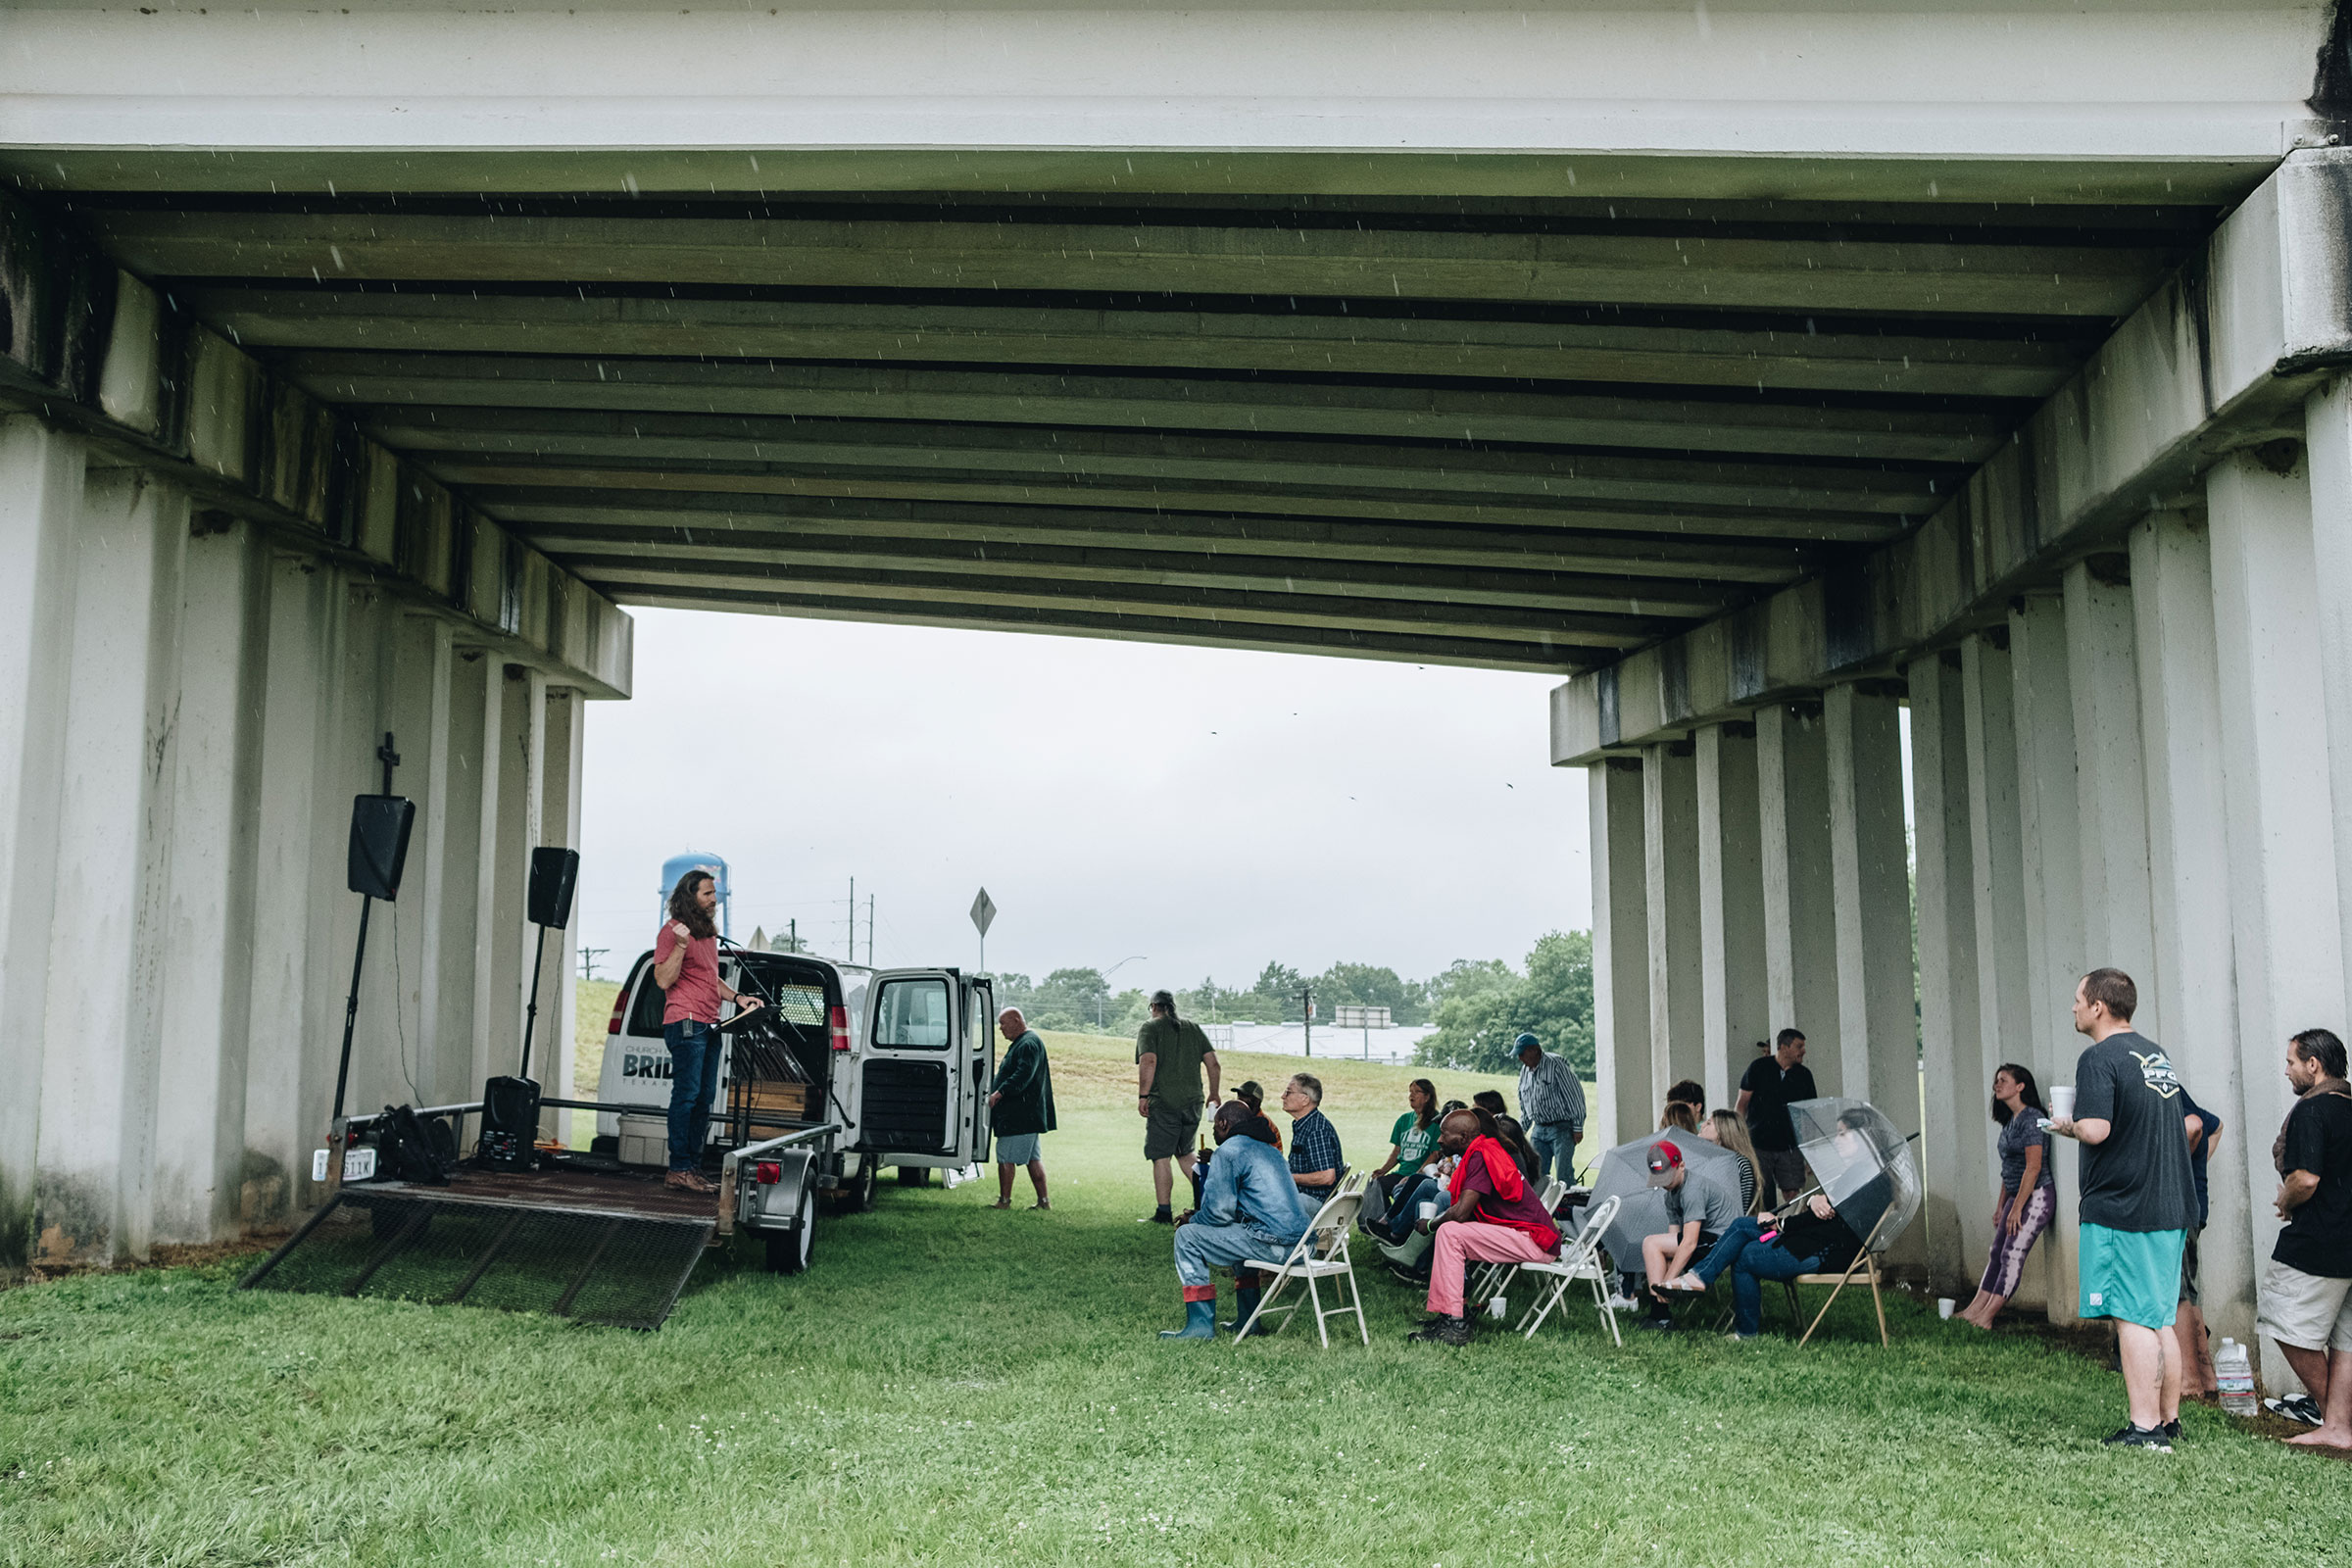 Pastor Cody Howard delivers a sermon to attendees of Church Under the Bridge